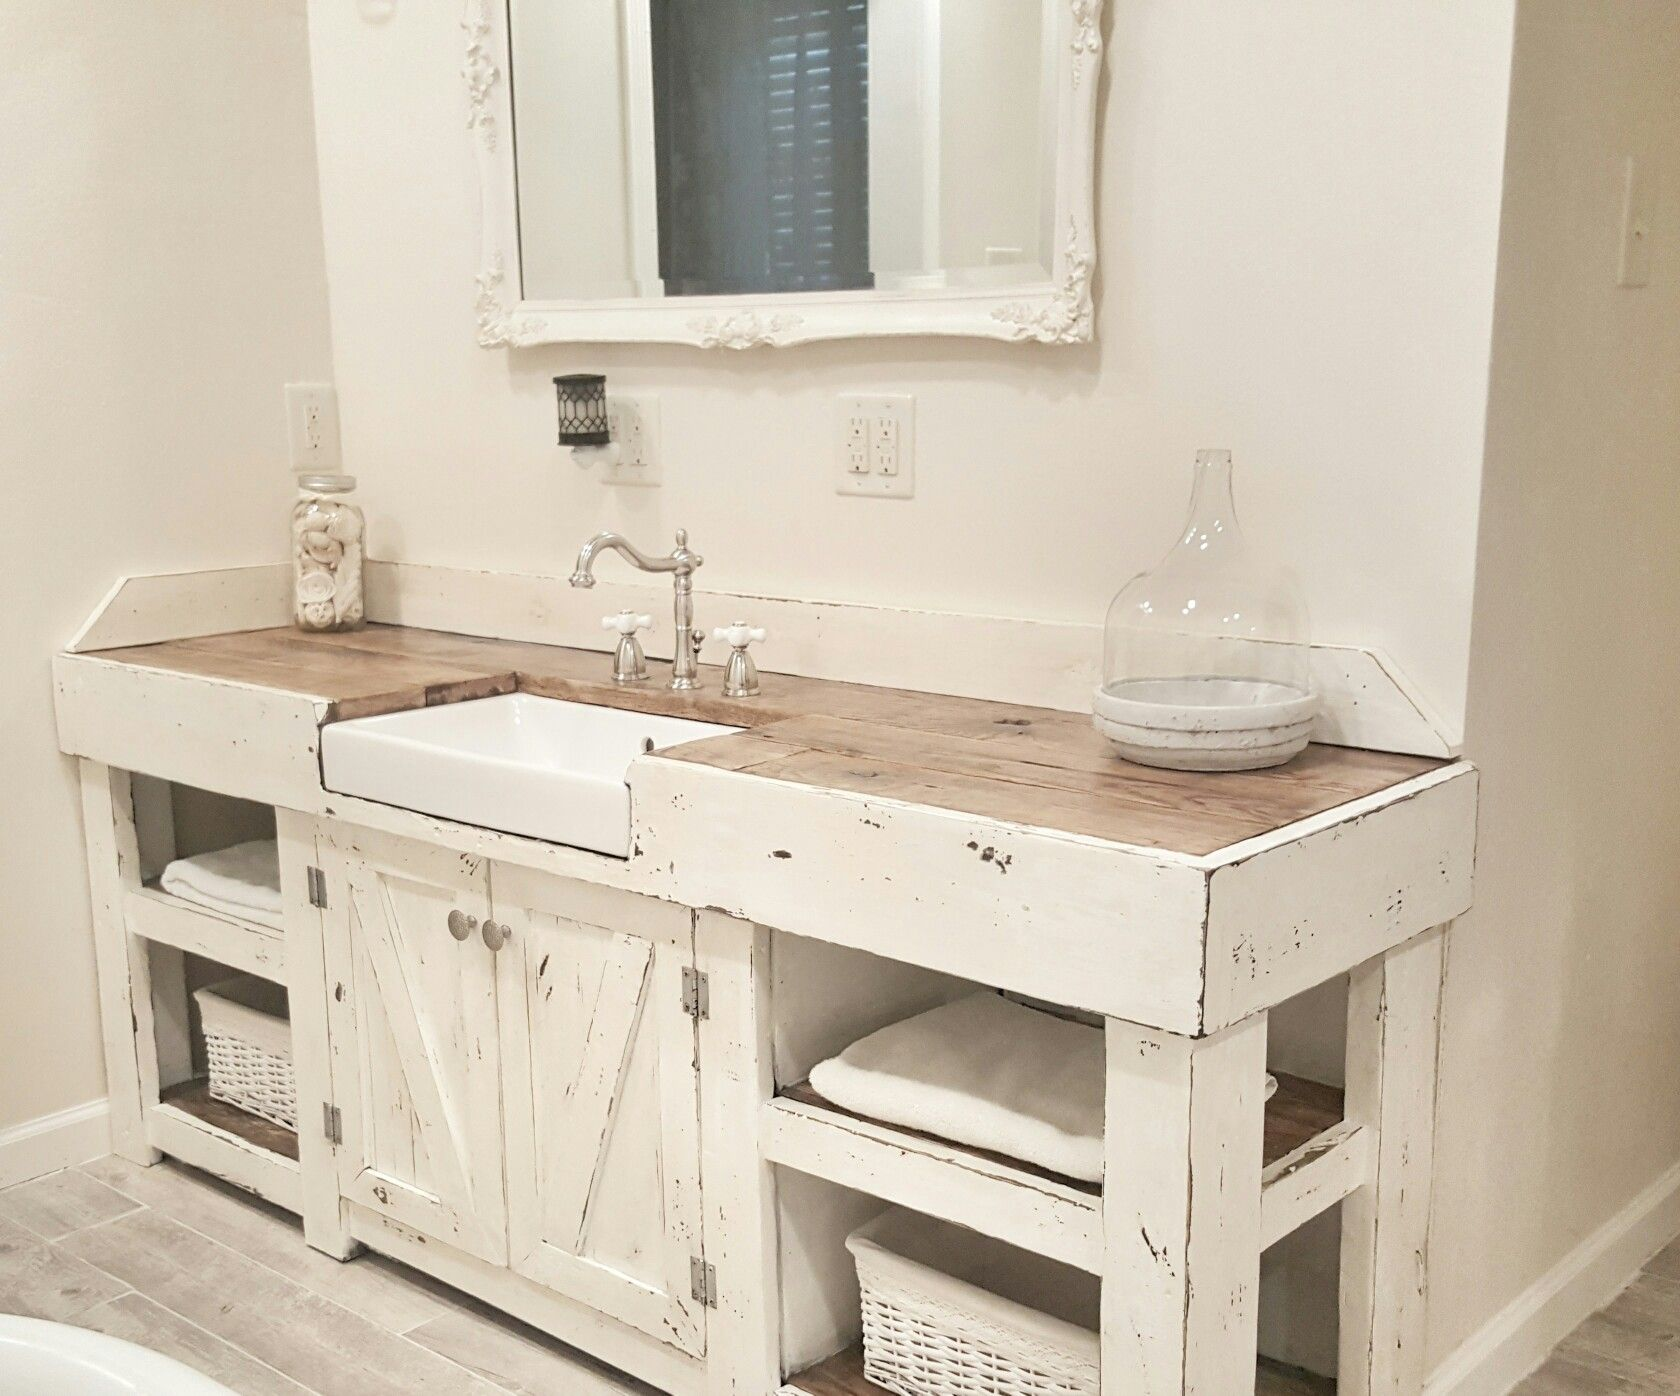 Bathroom Vanities With Sinks Included on bathroom vanity bases only, bathroom vessel faucets, bathroom vanity sierra copper hampton, bathroom vanity pulls, bathroom vanity mirrors, bathroom vanity tops, bathroom vanity decor, bathroom sink designs, bathroom cabinets, bathroom vanity chairs, bathroom sink vanity furniture, bathroom sink faucets waterfall style,